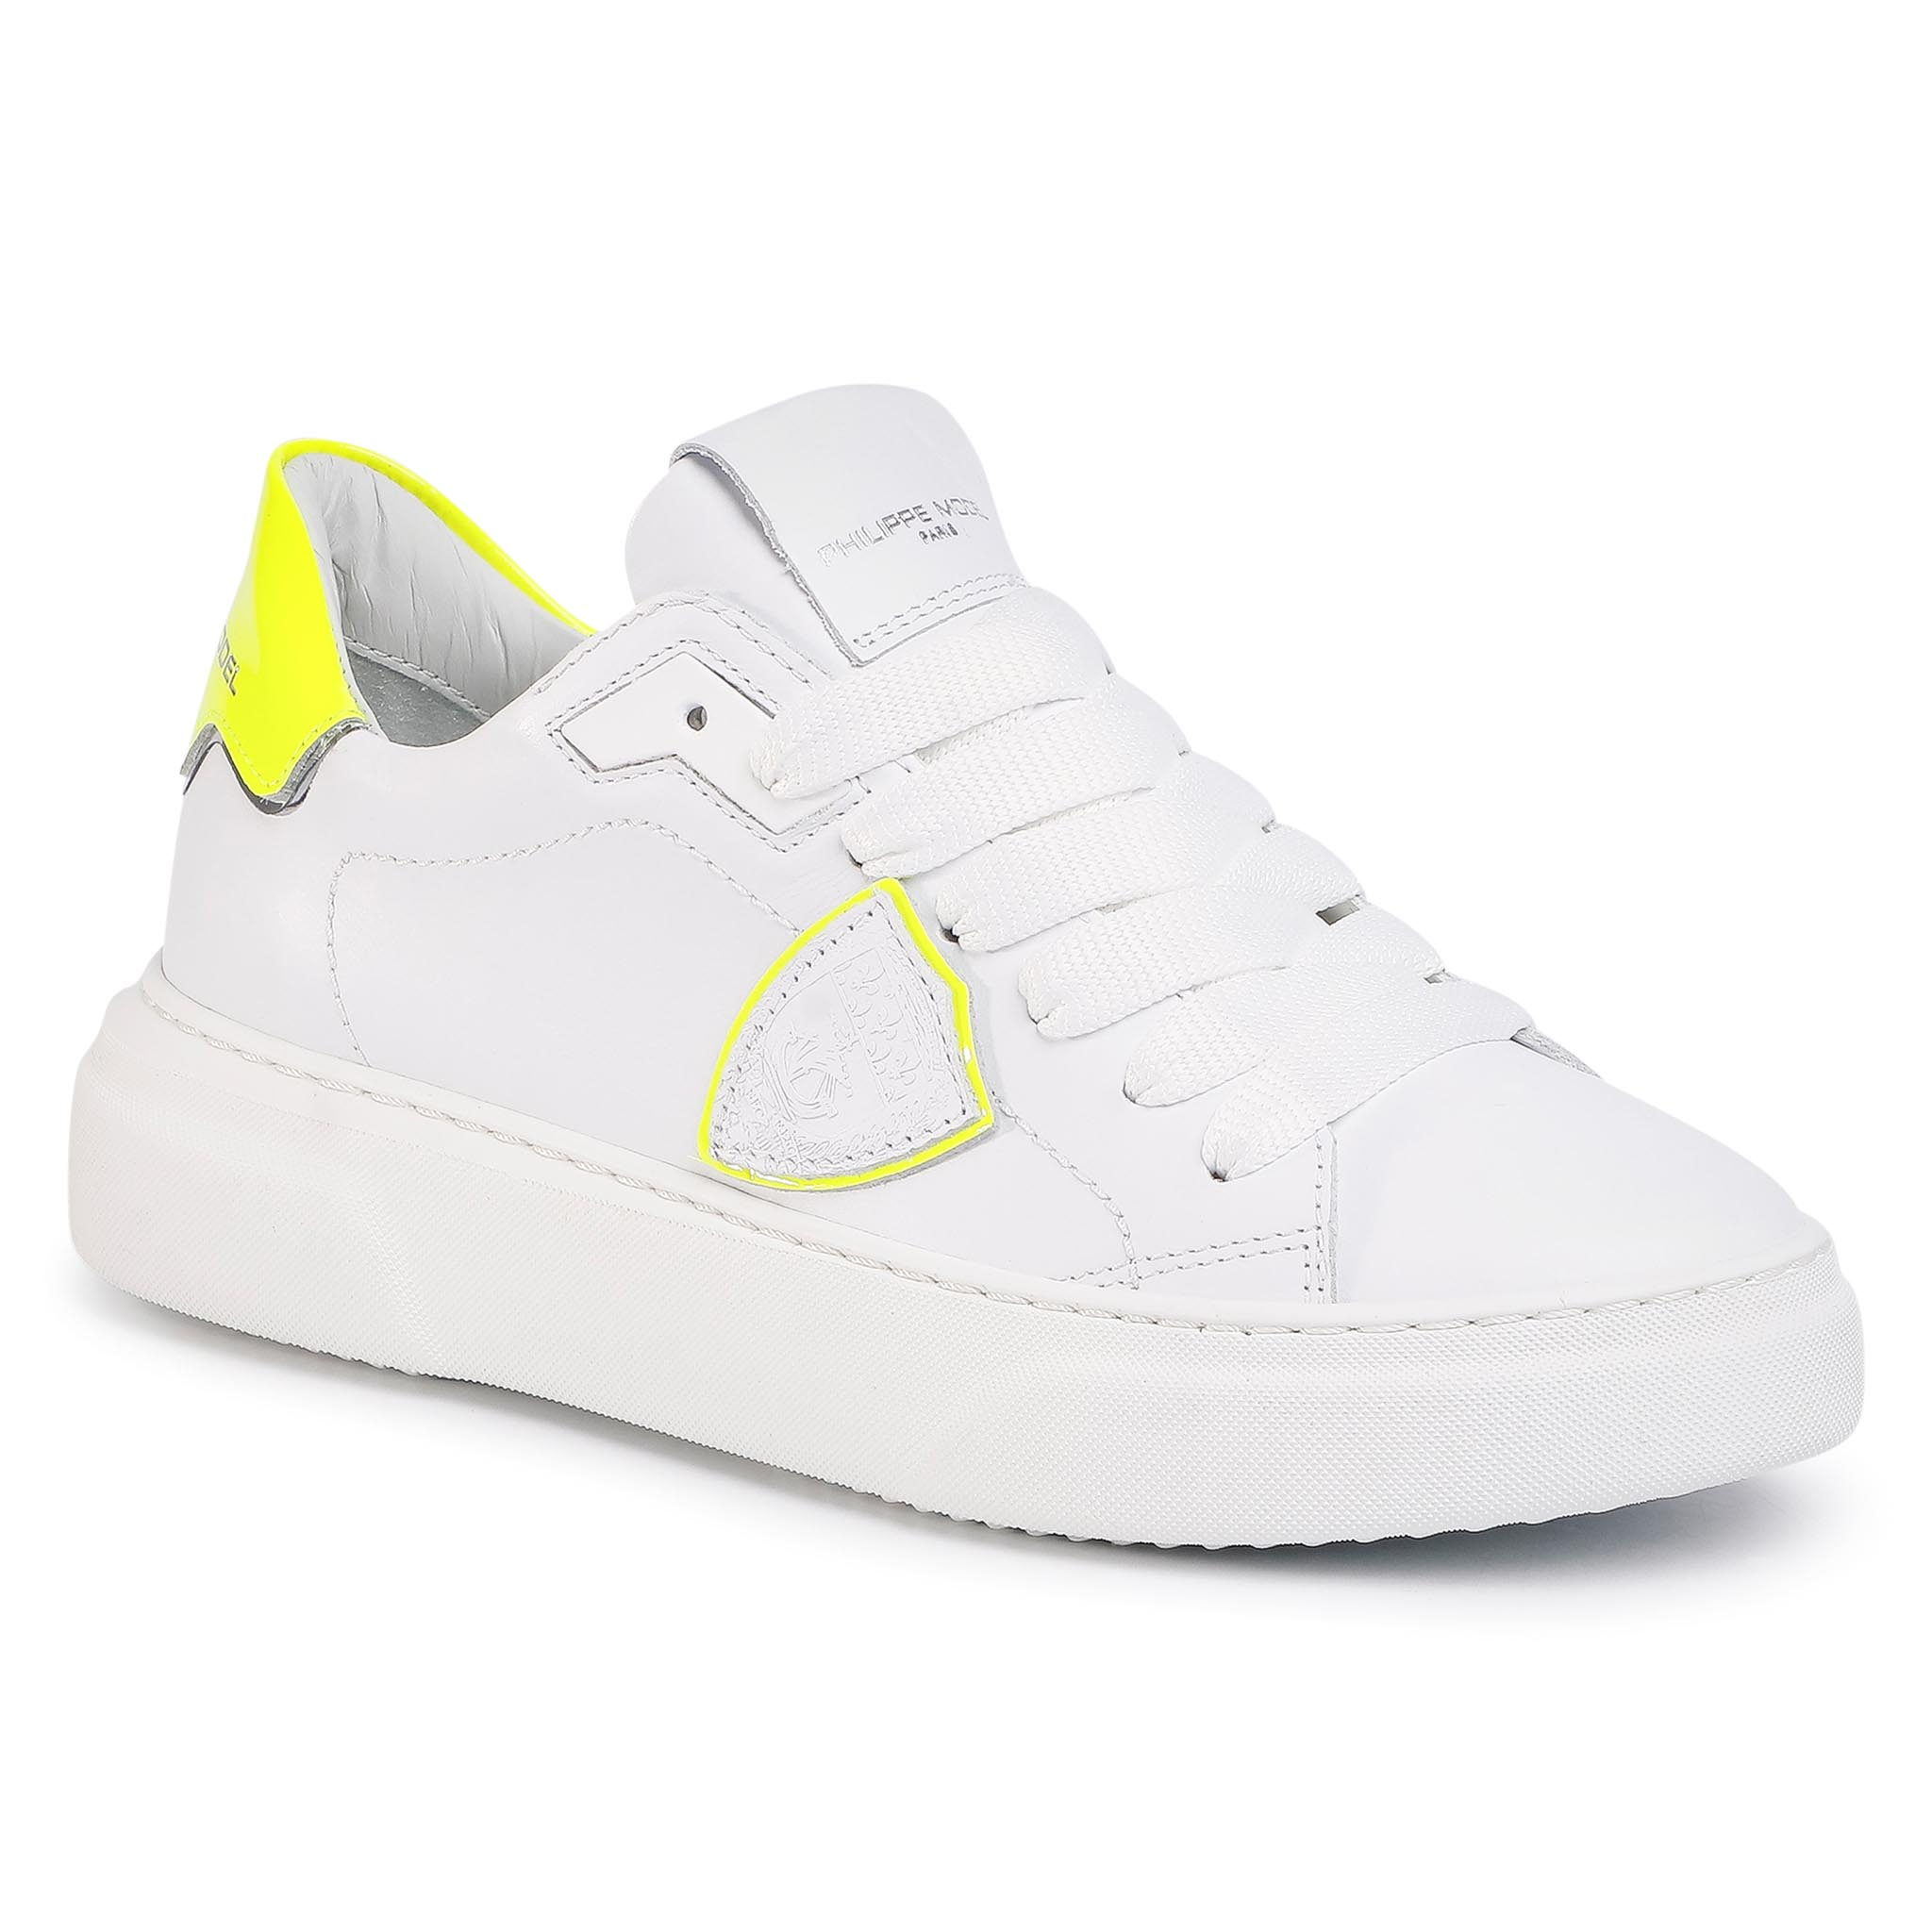 Sneakers PHILIPPE MODEL - Temple BYLD FV01 Neon Blanc Jaune